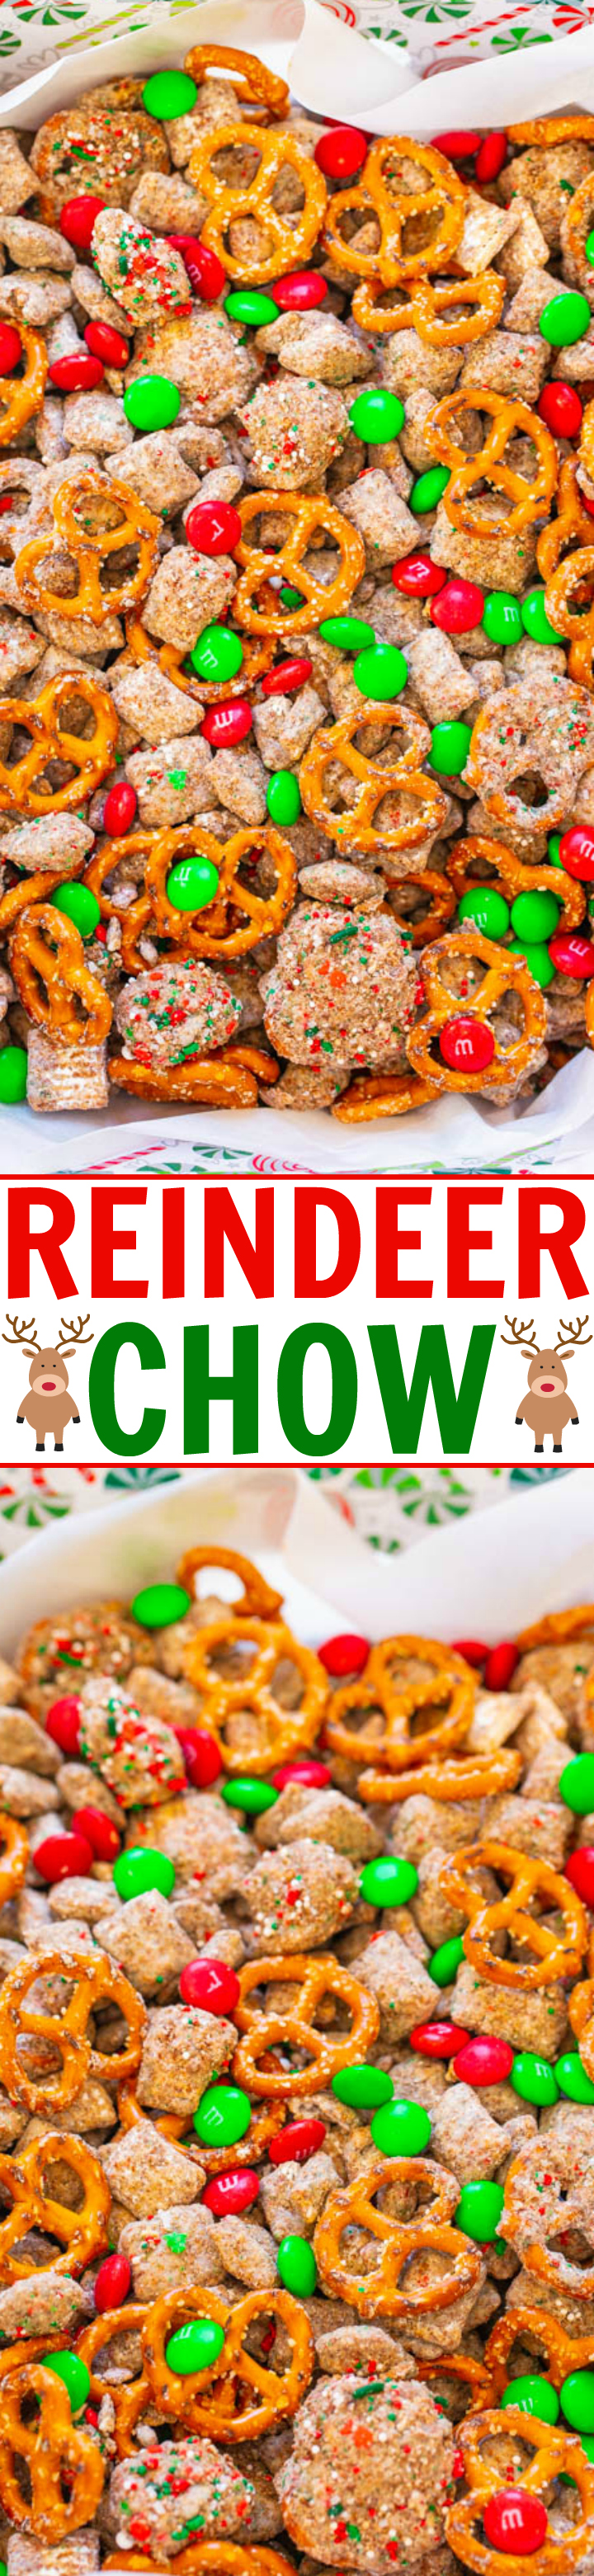 Reindeer Chow Aka Christmas Puppy Chow Averie Cooks